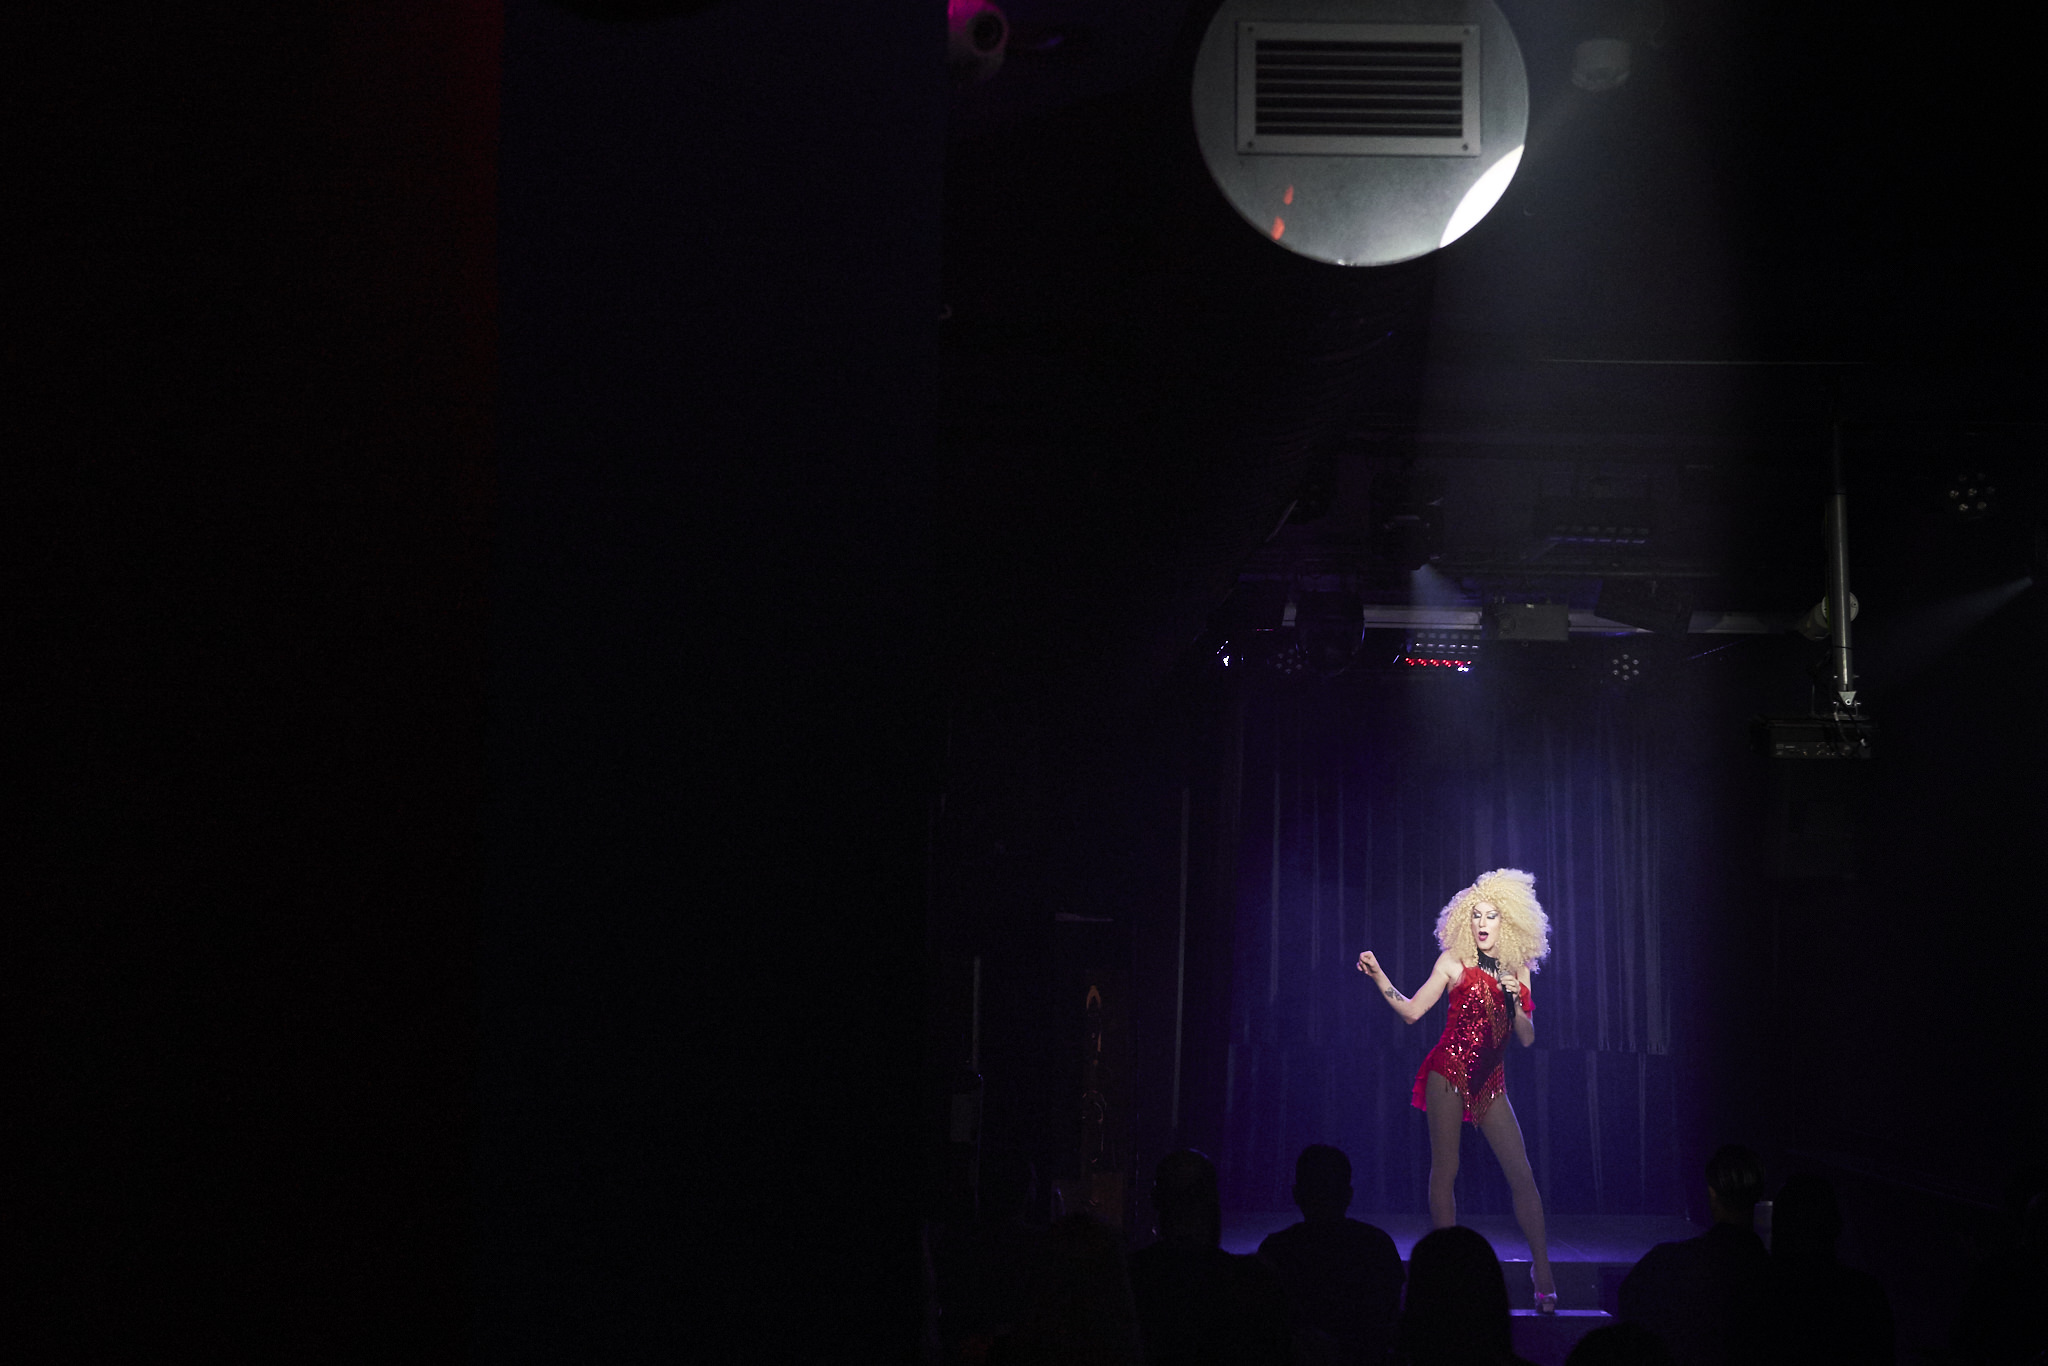 Fotografo Documental Barcelona Drags Queens Believe Club_LME6362.jpg